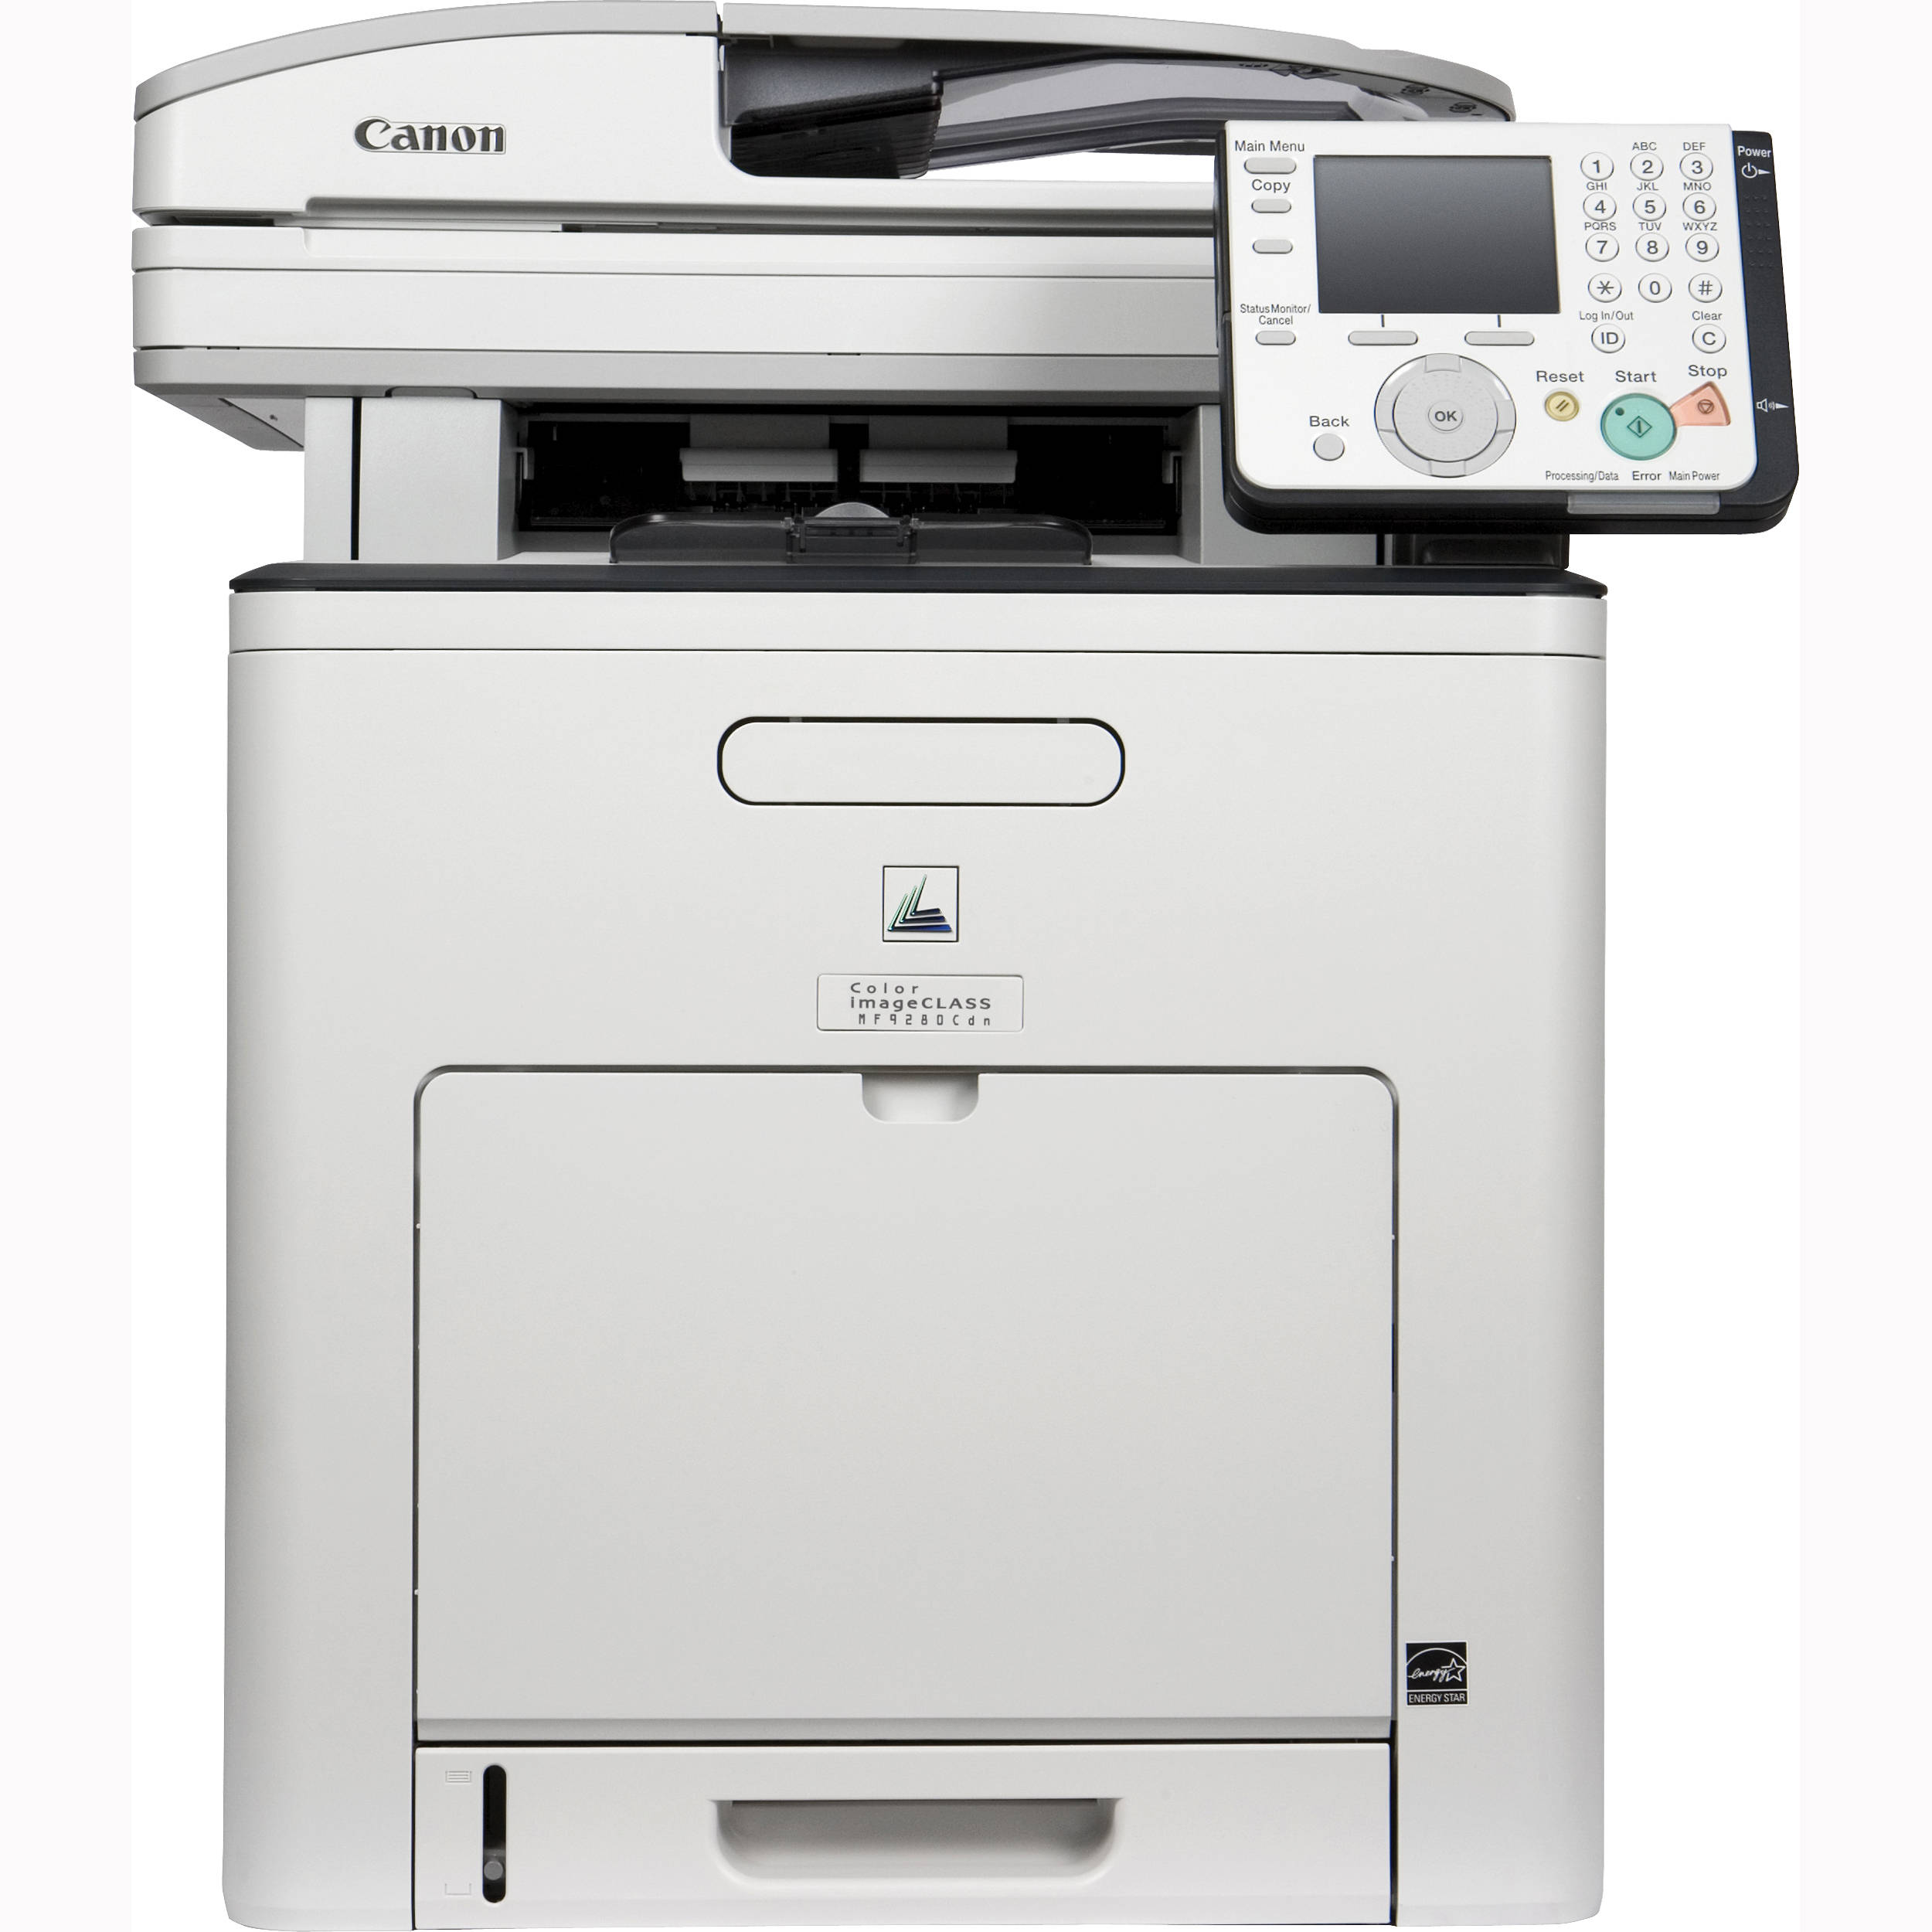 Canon imageCLASS MF9280Cdn MFP PPD Driver for PC